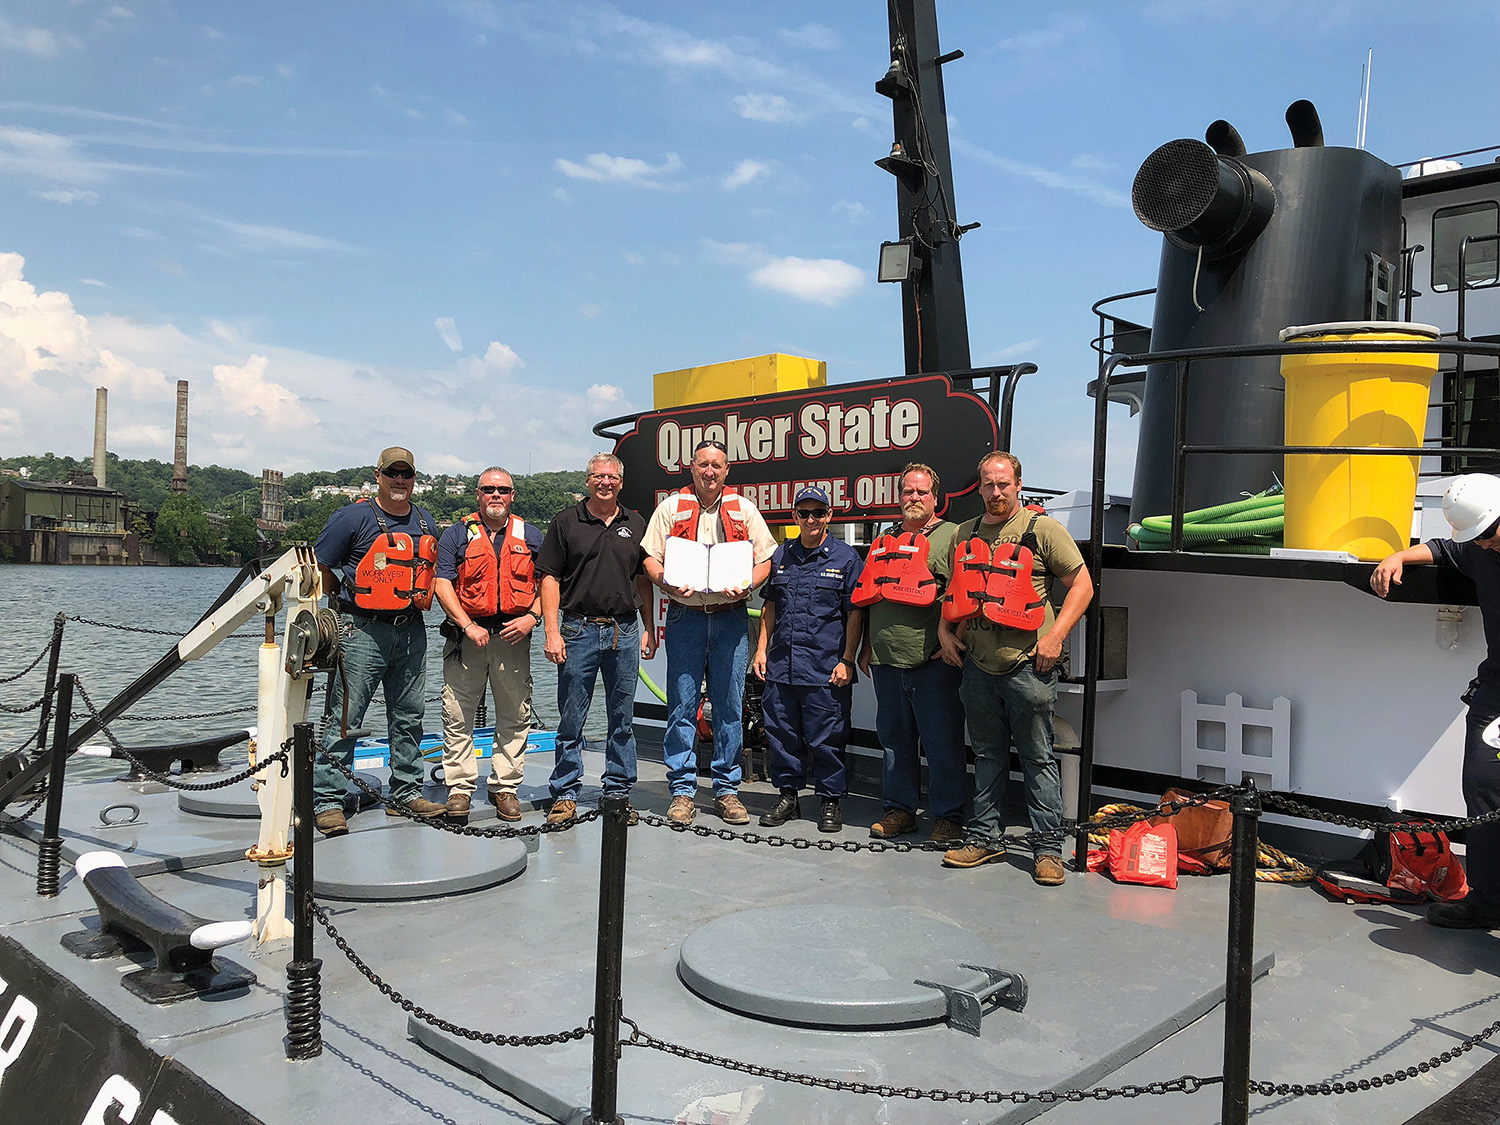 Pictured left to right are Shawn Hodgson, maintenance director; Roger Garretson, EHSS director; Ron Harrison, port captain; Robert Harrison, owner; Aaron Demo, Coast Guard Captain of the Port of Pittsburgh; Jeff Stephen, vessel captain; and Kevin Lyons, deckhand. (Photo courtesy of Bellaire Harbor Service)